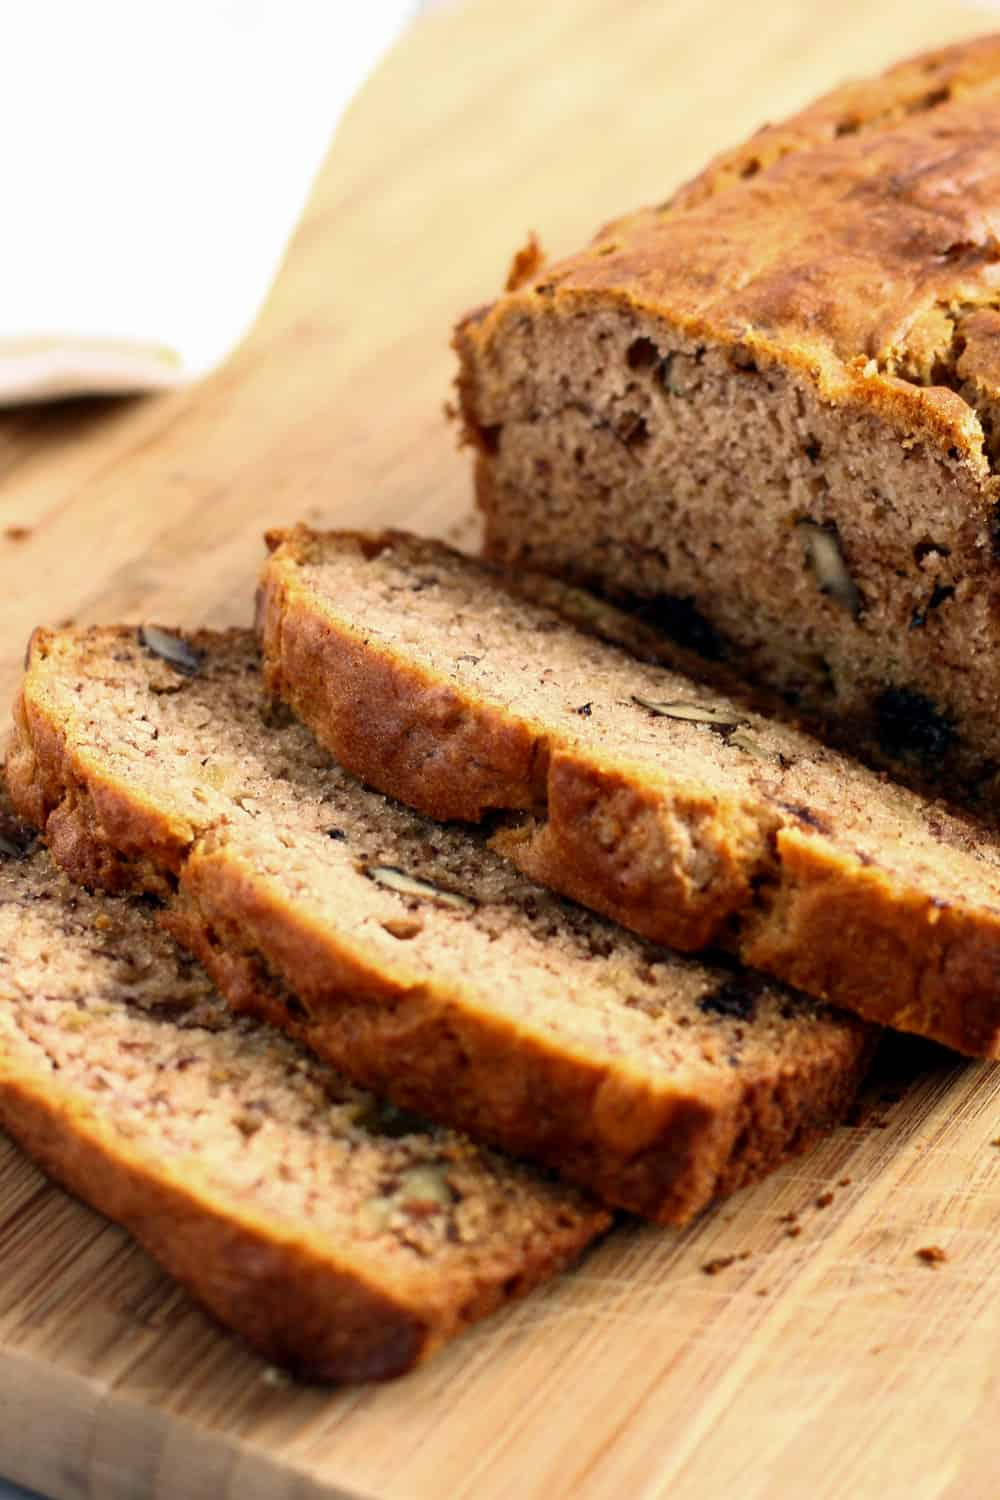 Gluten free banana bread recipe banana bread slices on wood cutting board forumfinder Gallery